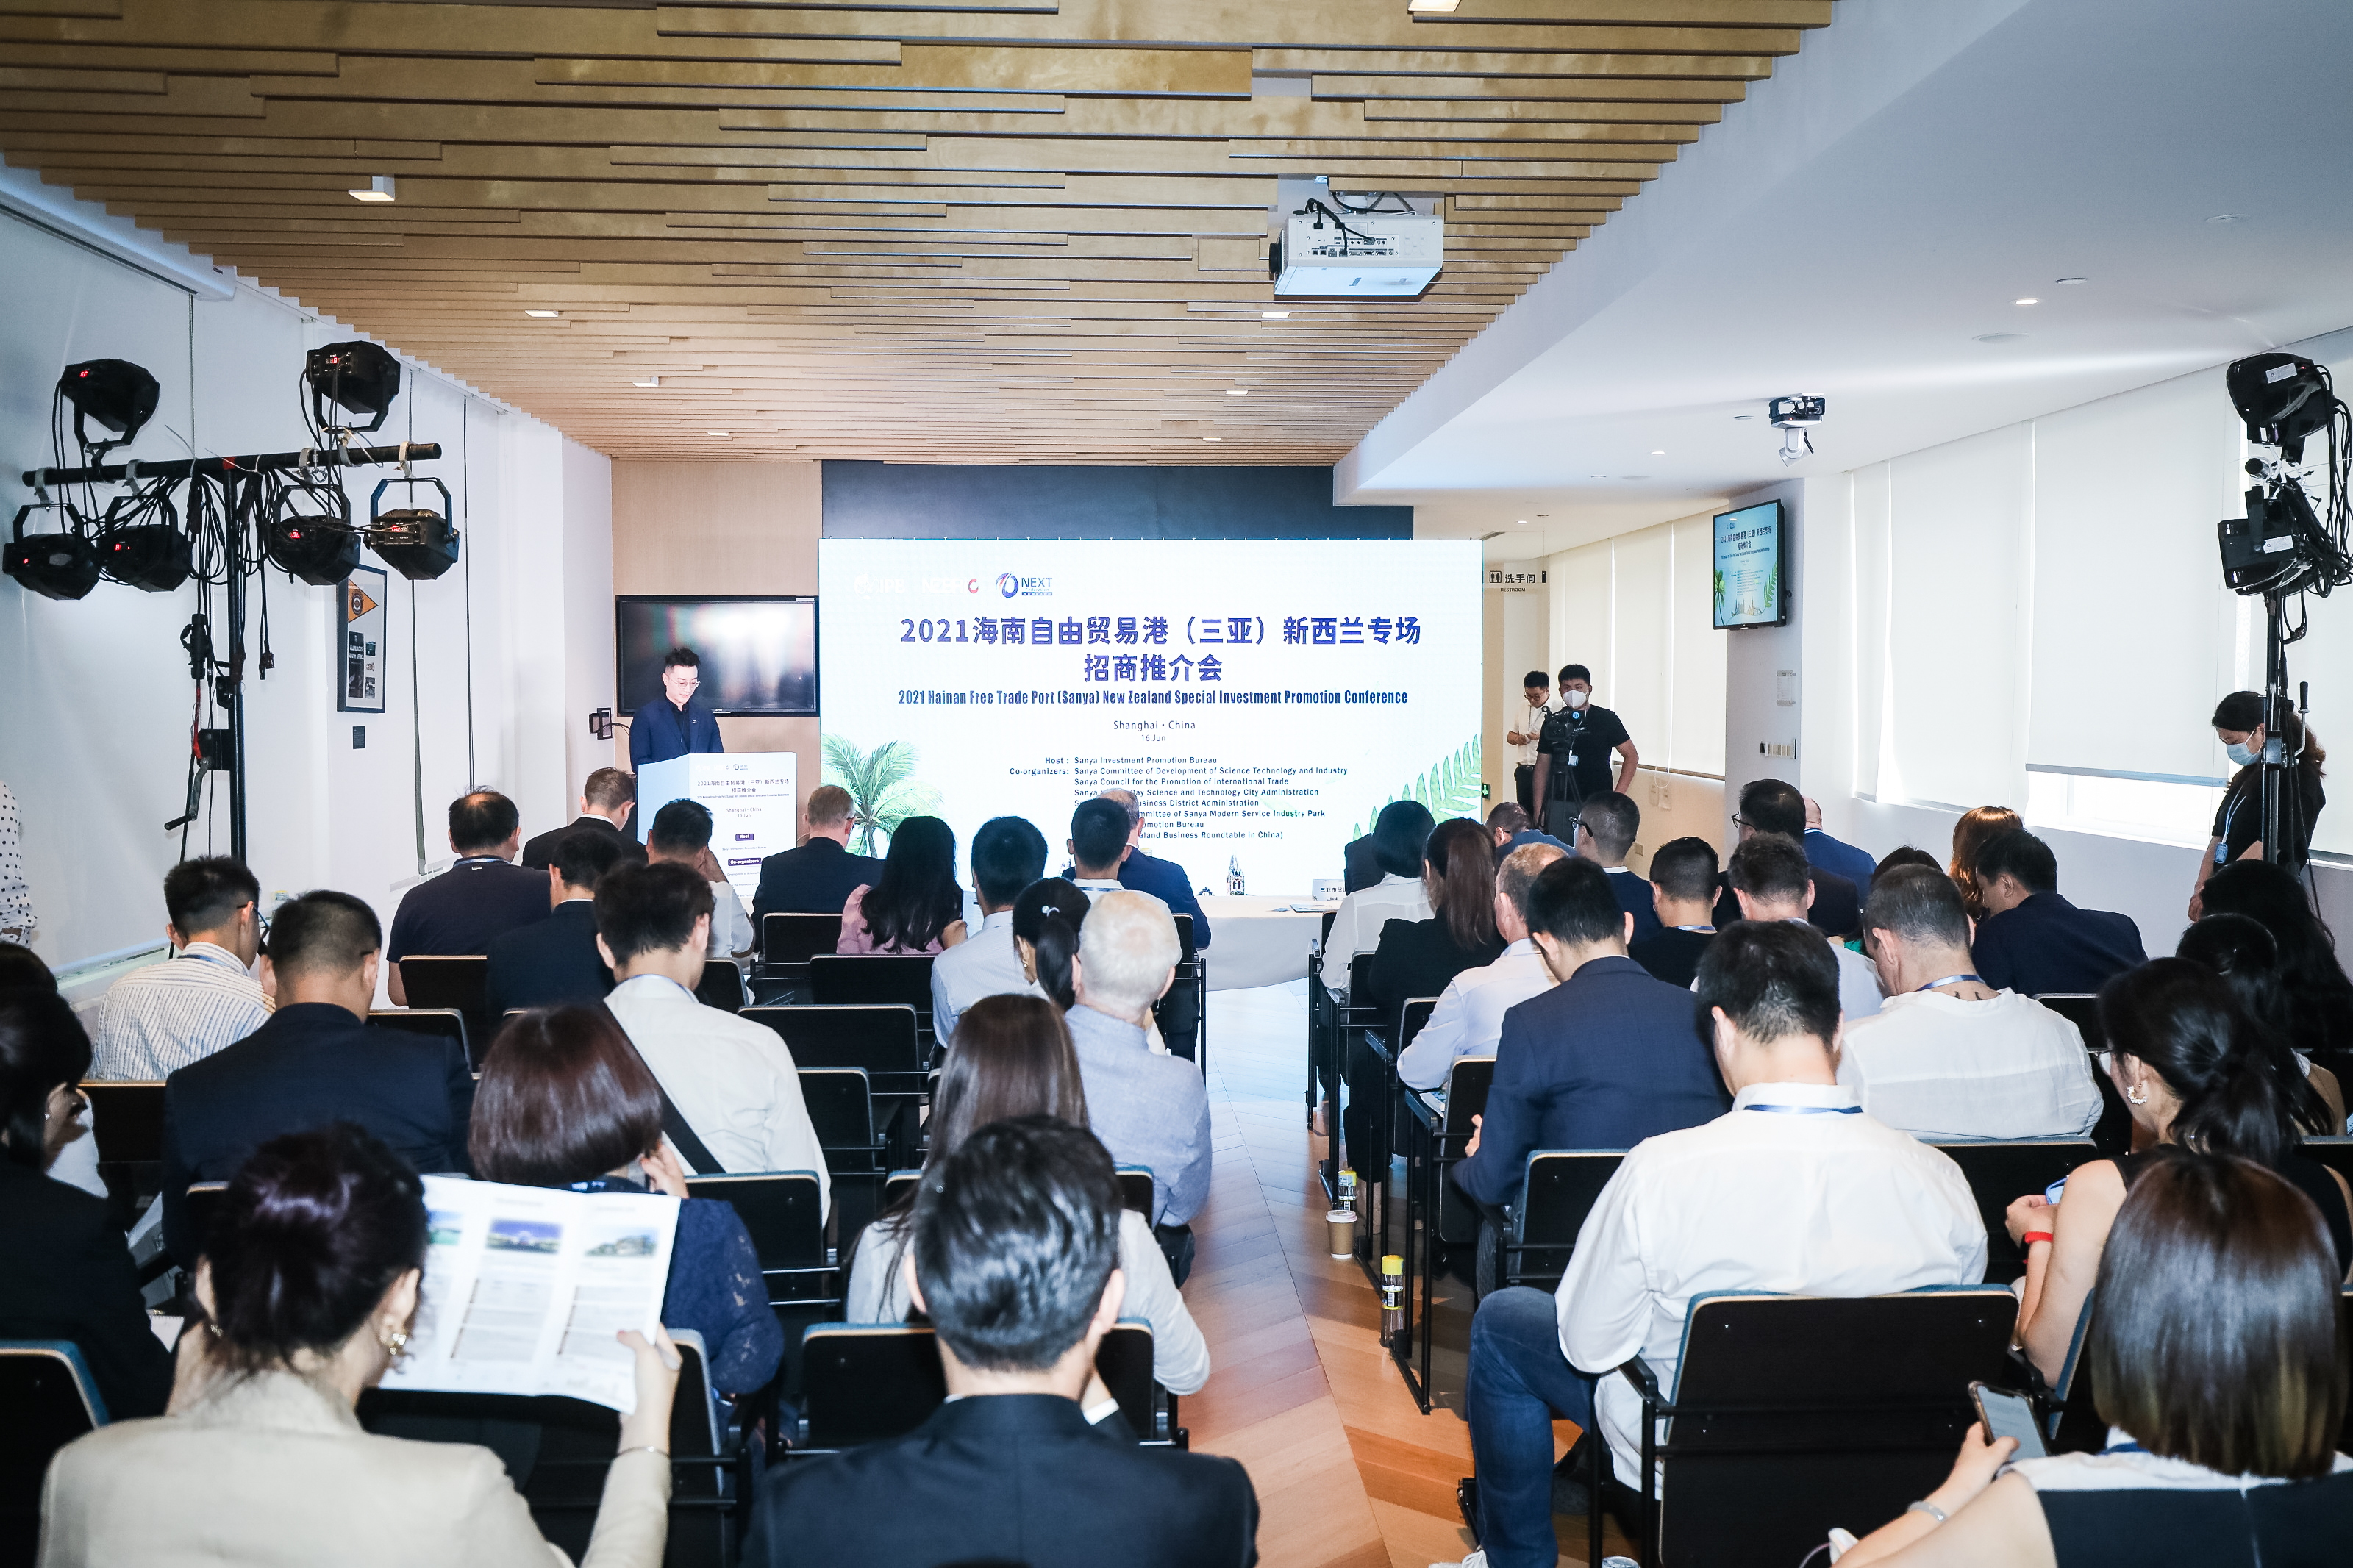 2021 Hainan Free Trade Port (Sanya) New Zealand special investment promotion meeting held in Shanghai